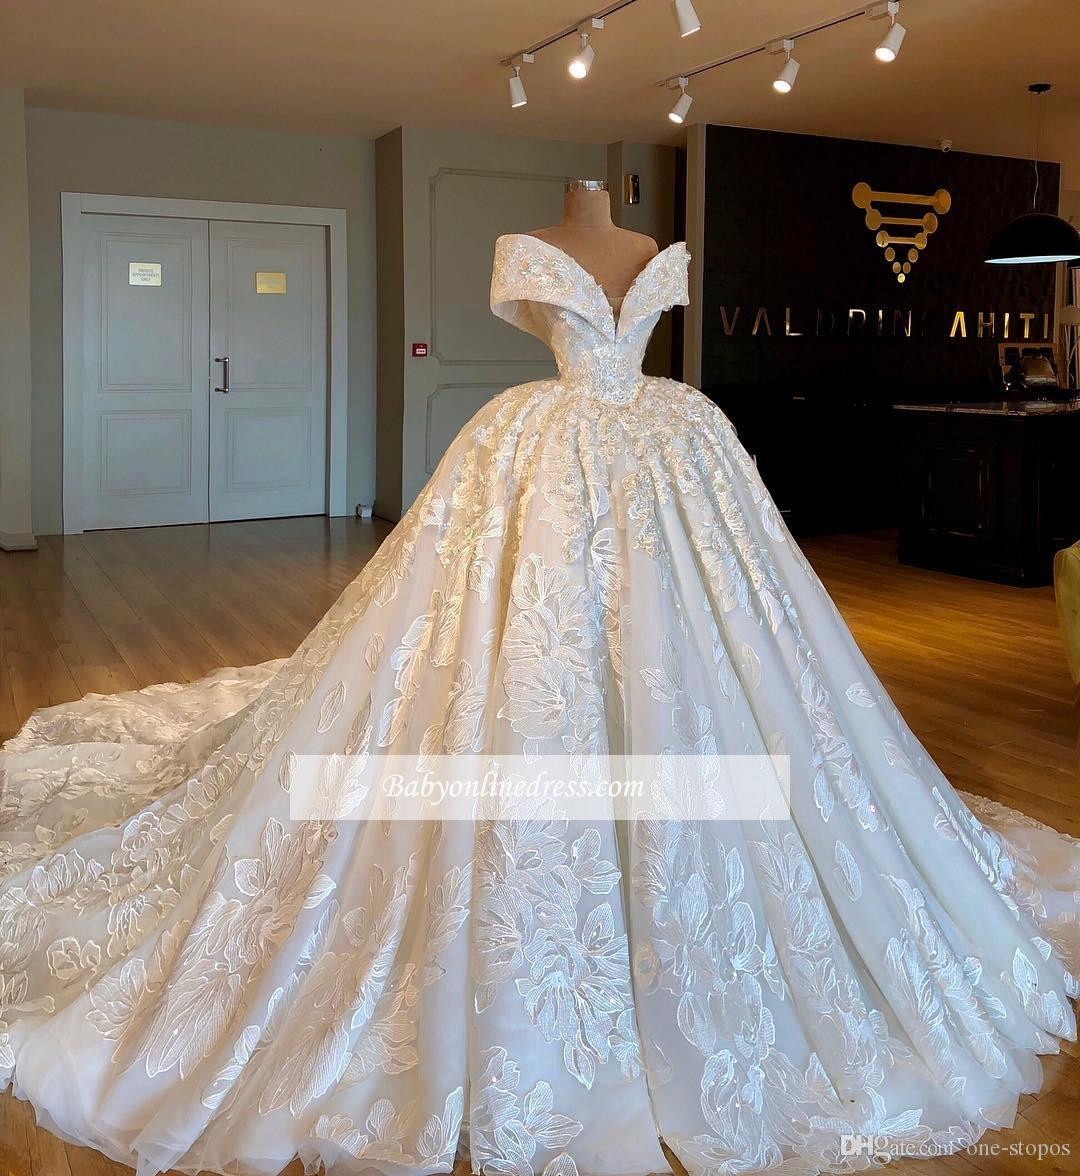 flowers wedding dress luxury ball gown vintage off shoulder bridal gown  cathedral wedding dresses plus size custom made vintage inspired wedding